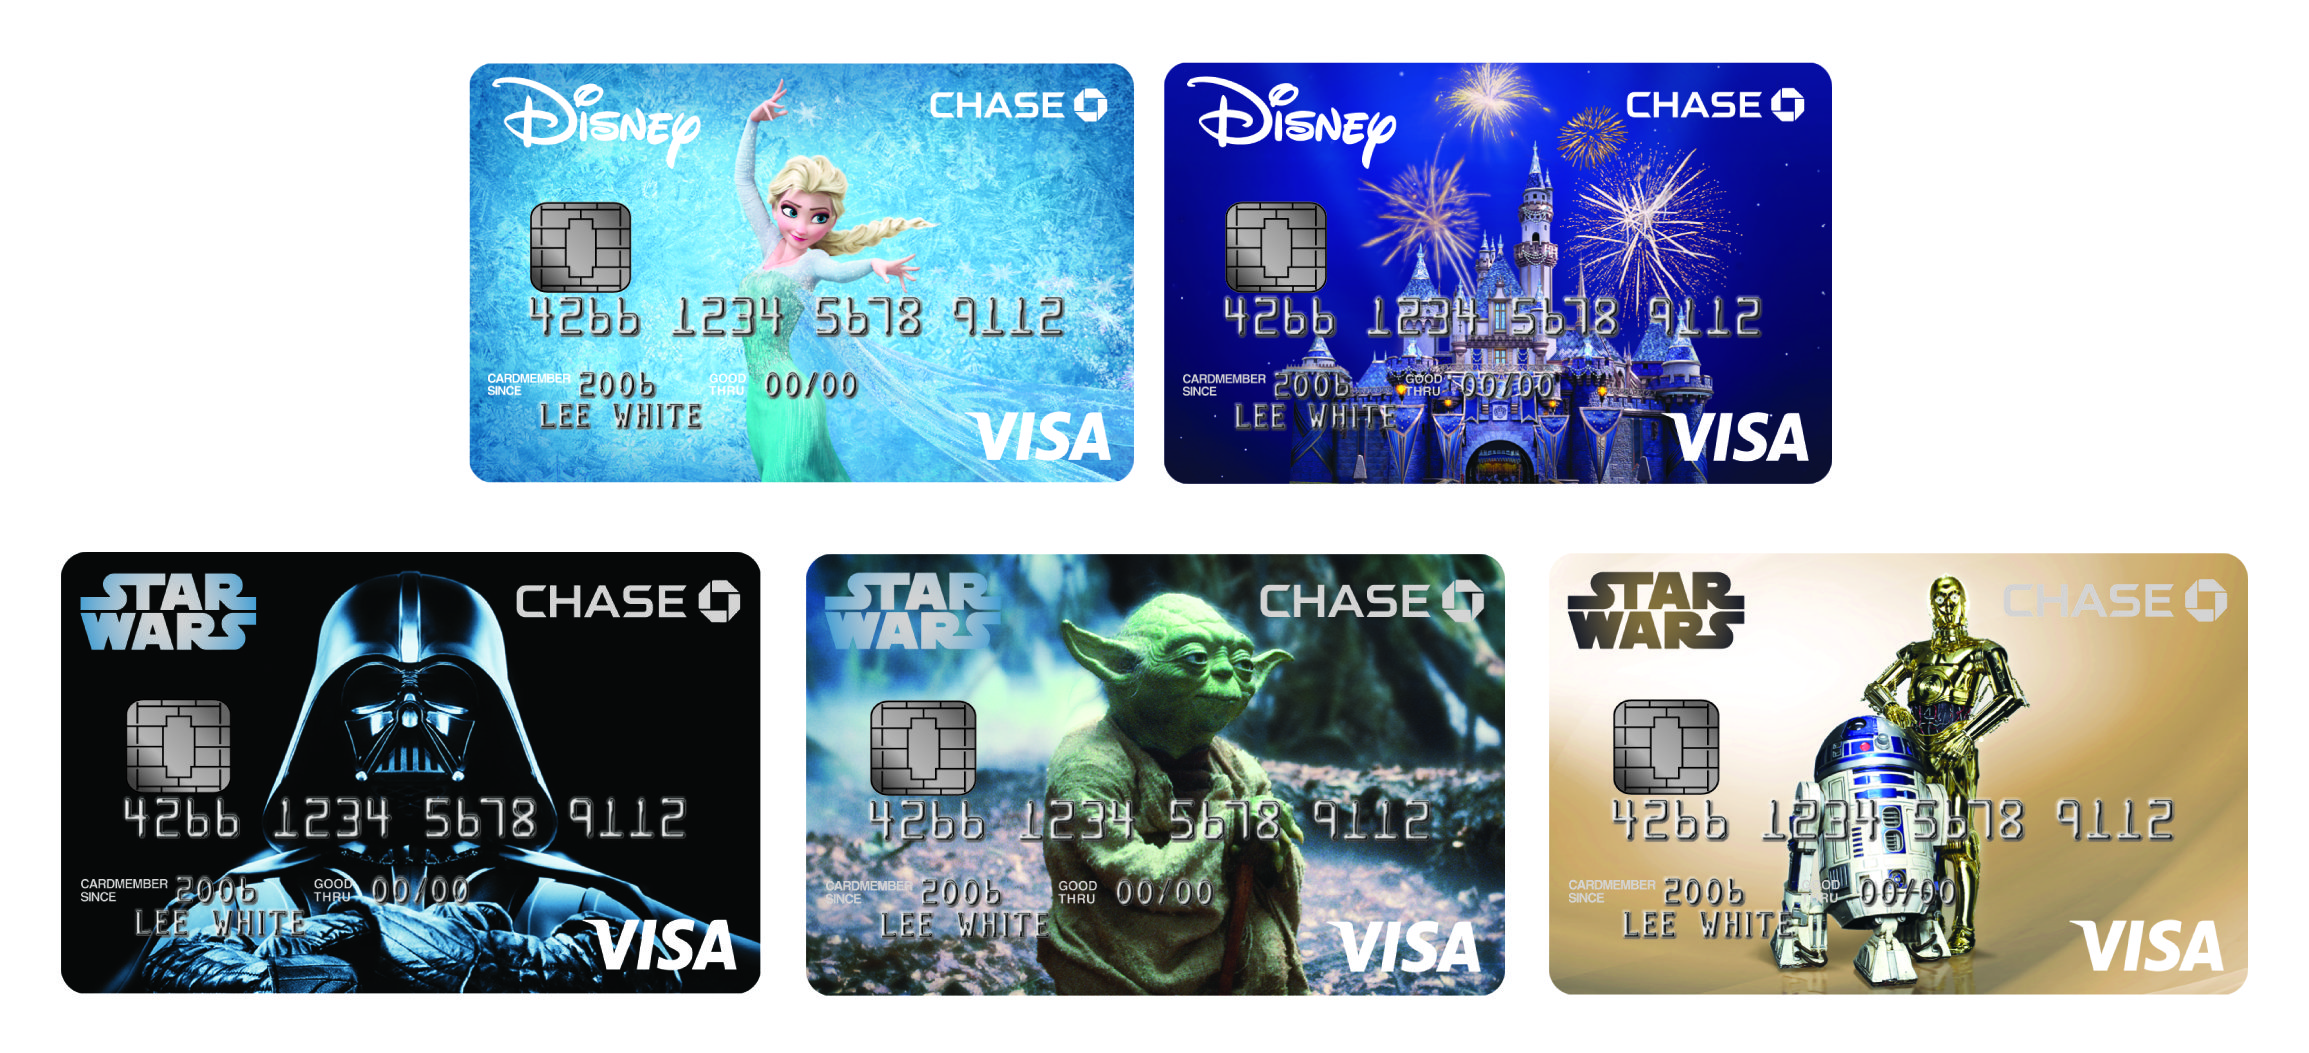 Chase To Offer New Star Wars Disney Visa Credit Card Designs Perks,Logo Design Freelance Graphic Design Contract Template Pdf